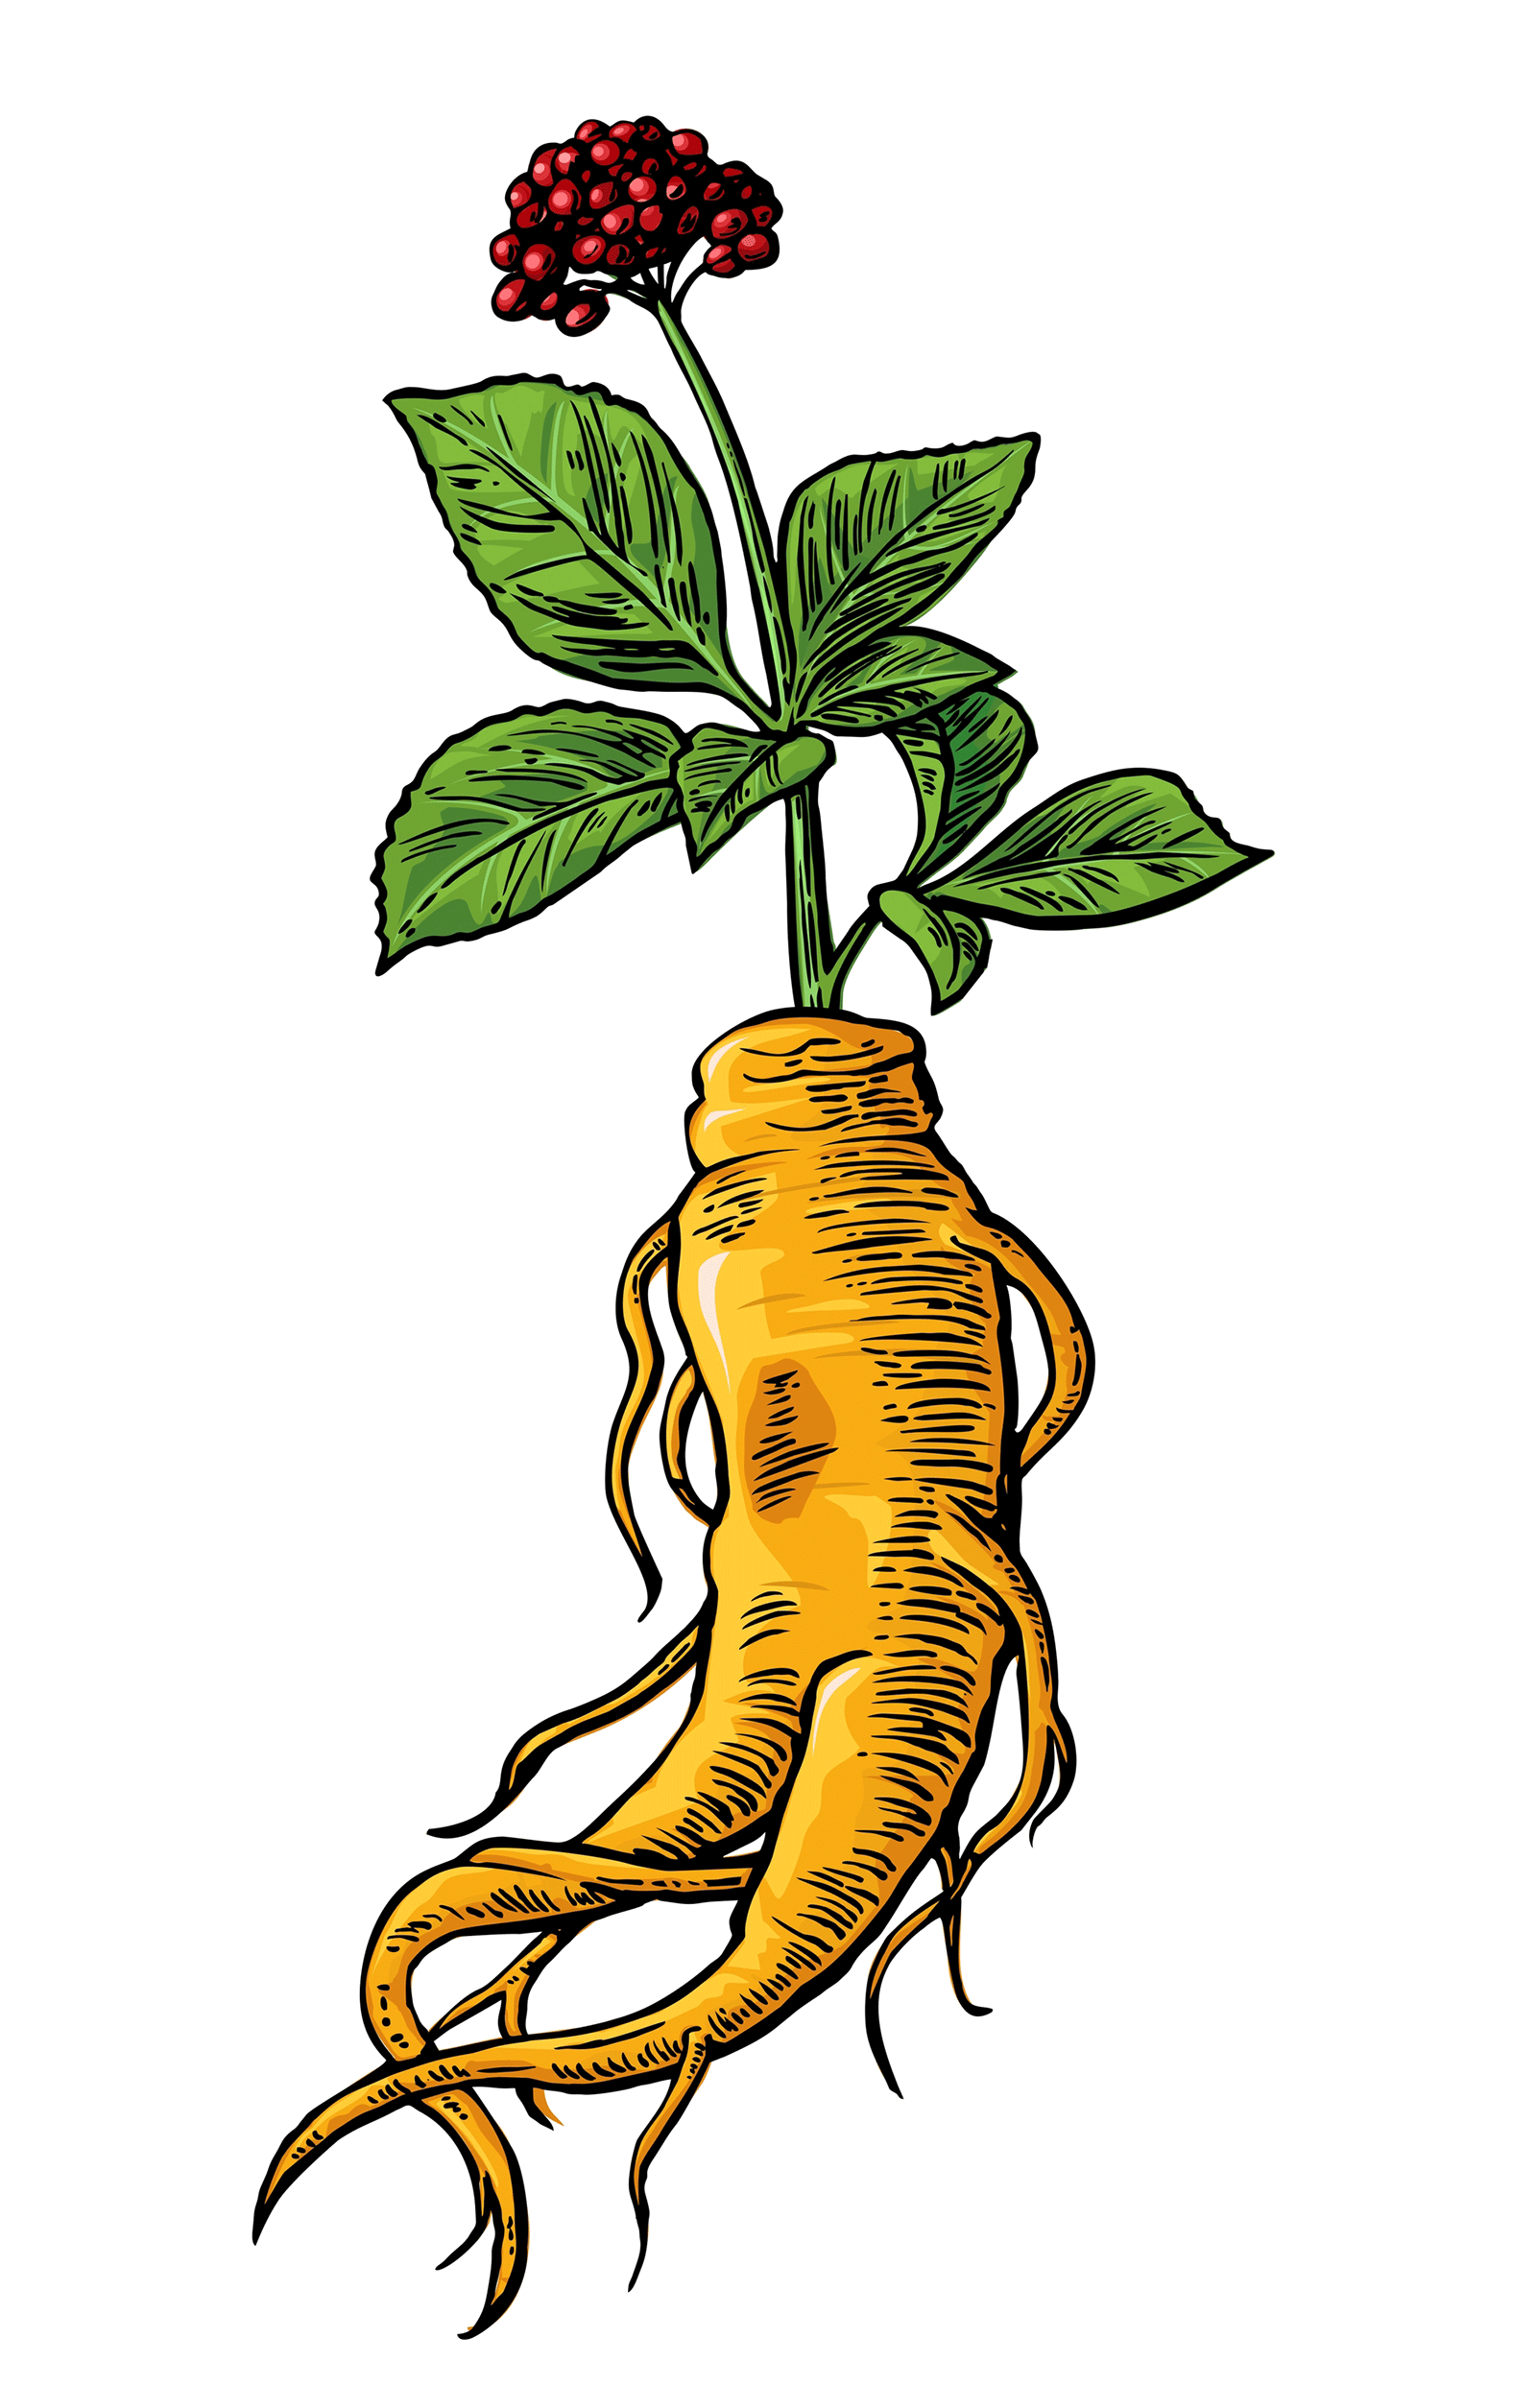 A sketched colorful illustration of a whole ginseng plant, including its fleshy roots.